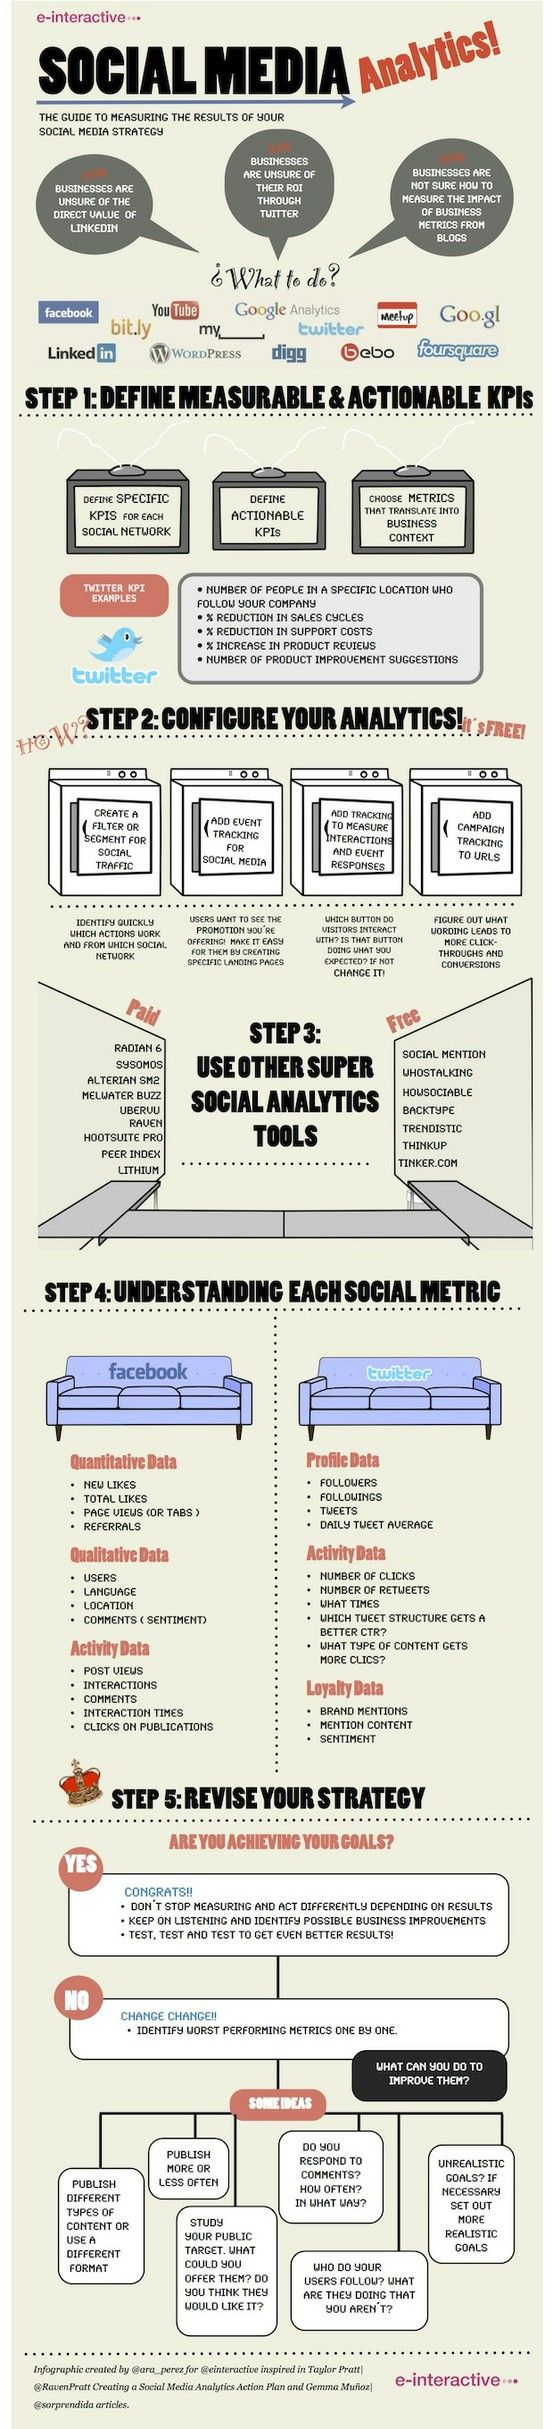 #Socialmedia Analytics & Measuring - very simple, in case you are just beginning to think about it... #infographic